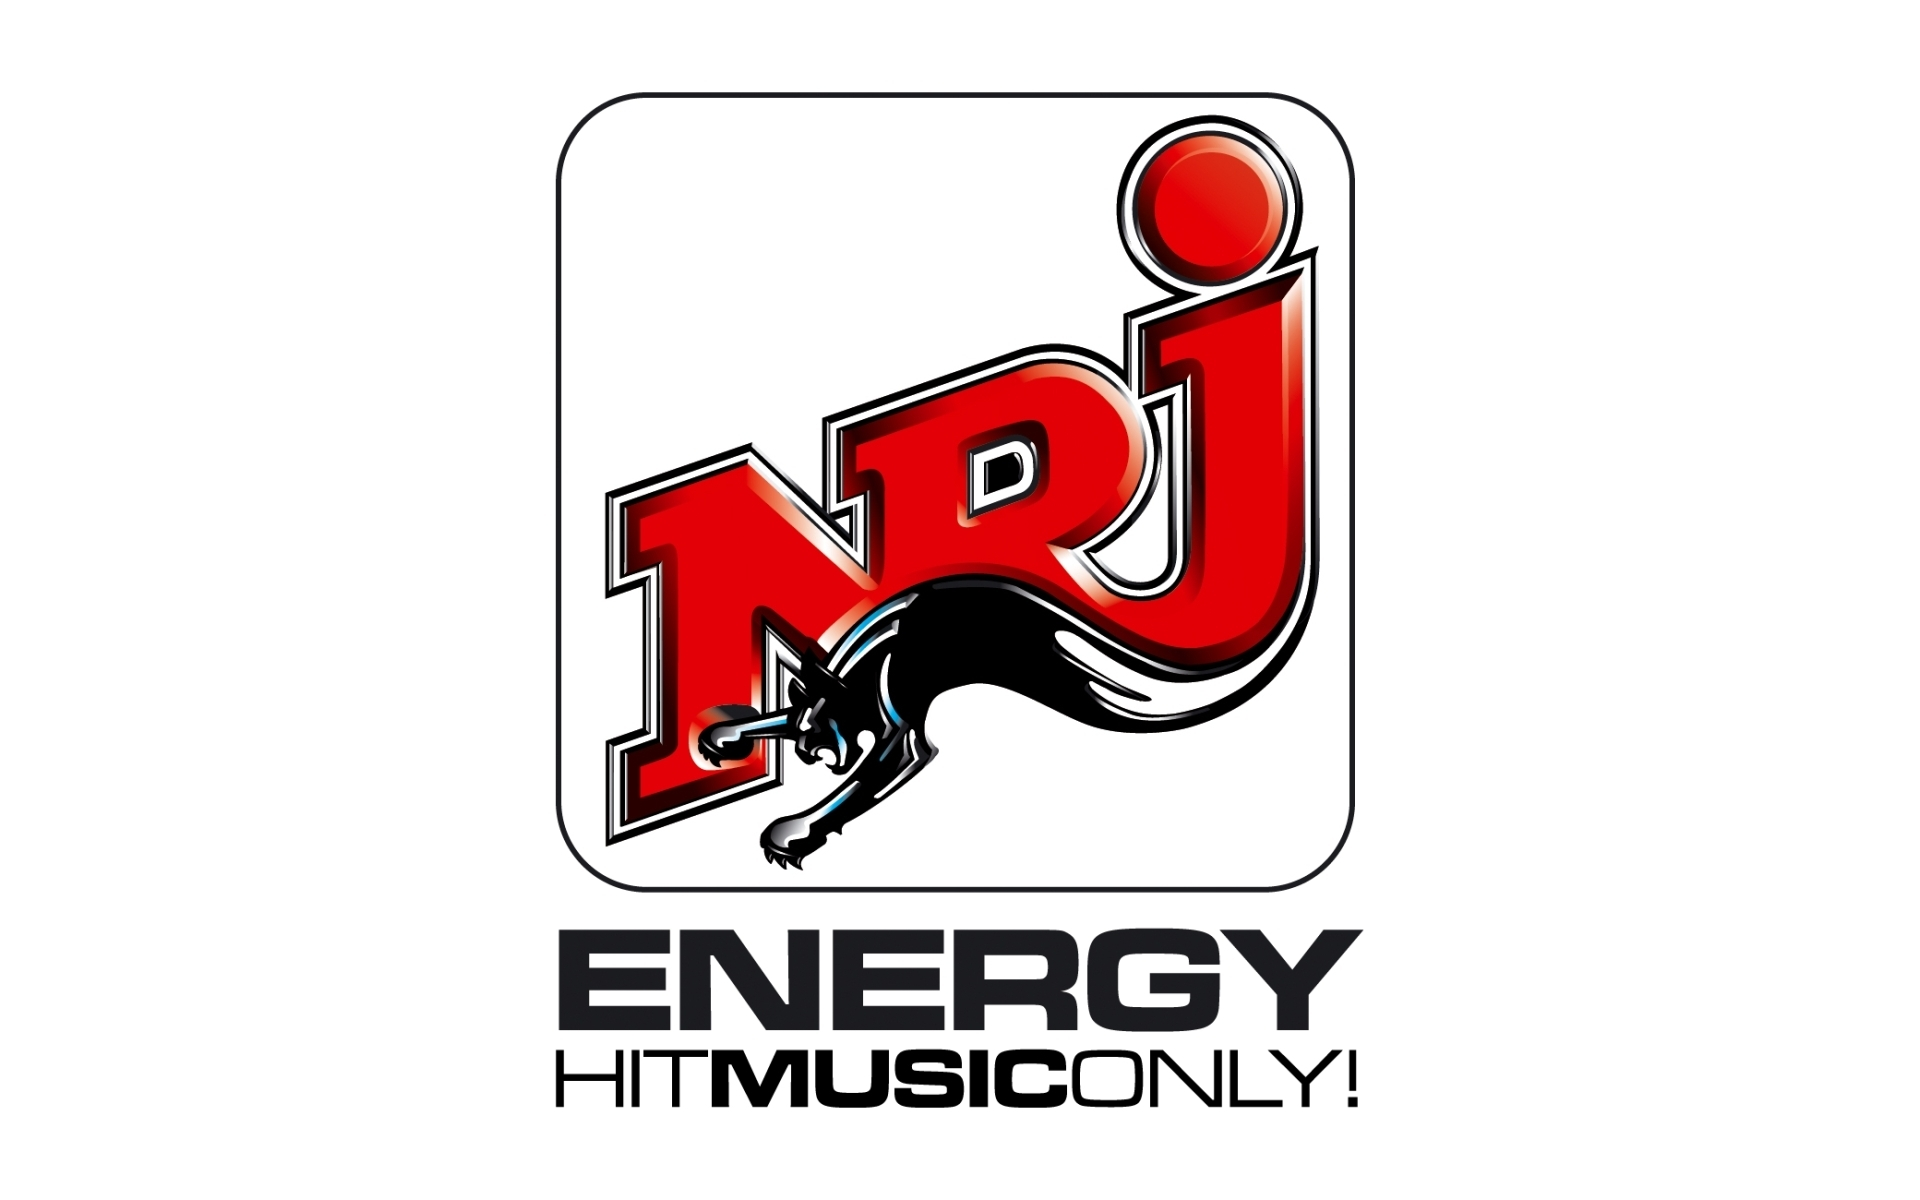 энерджи, hit music only, радио, nrj